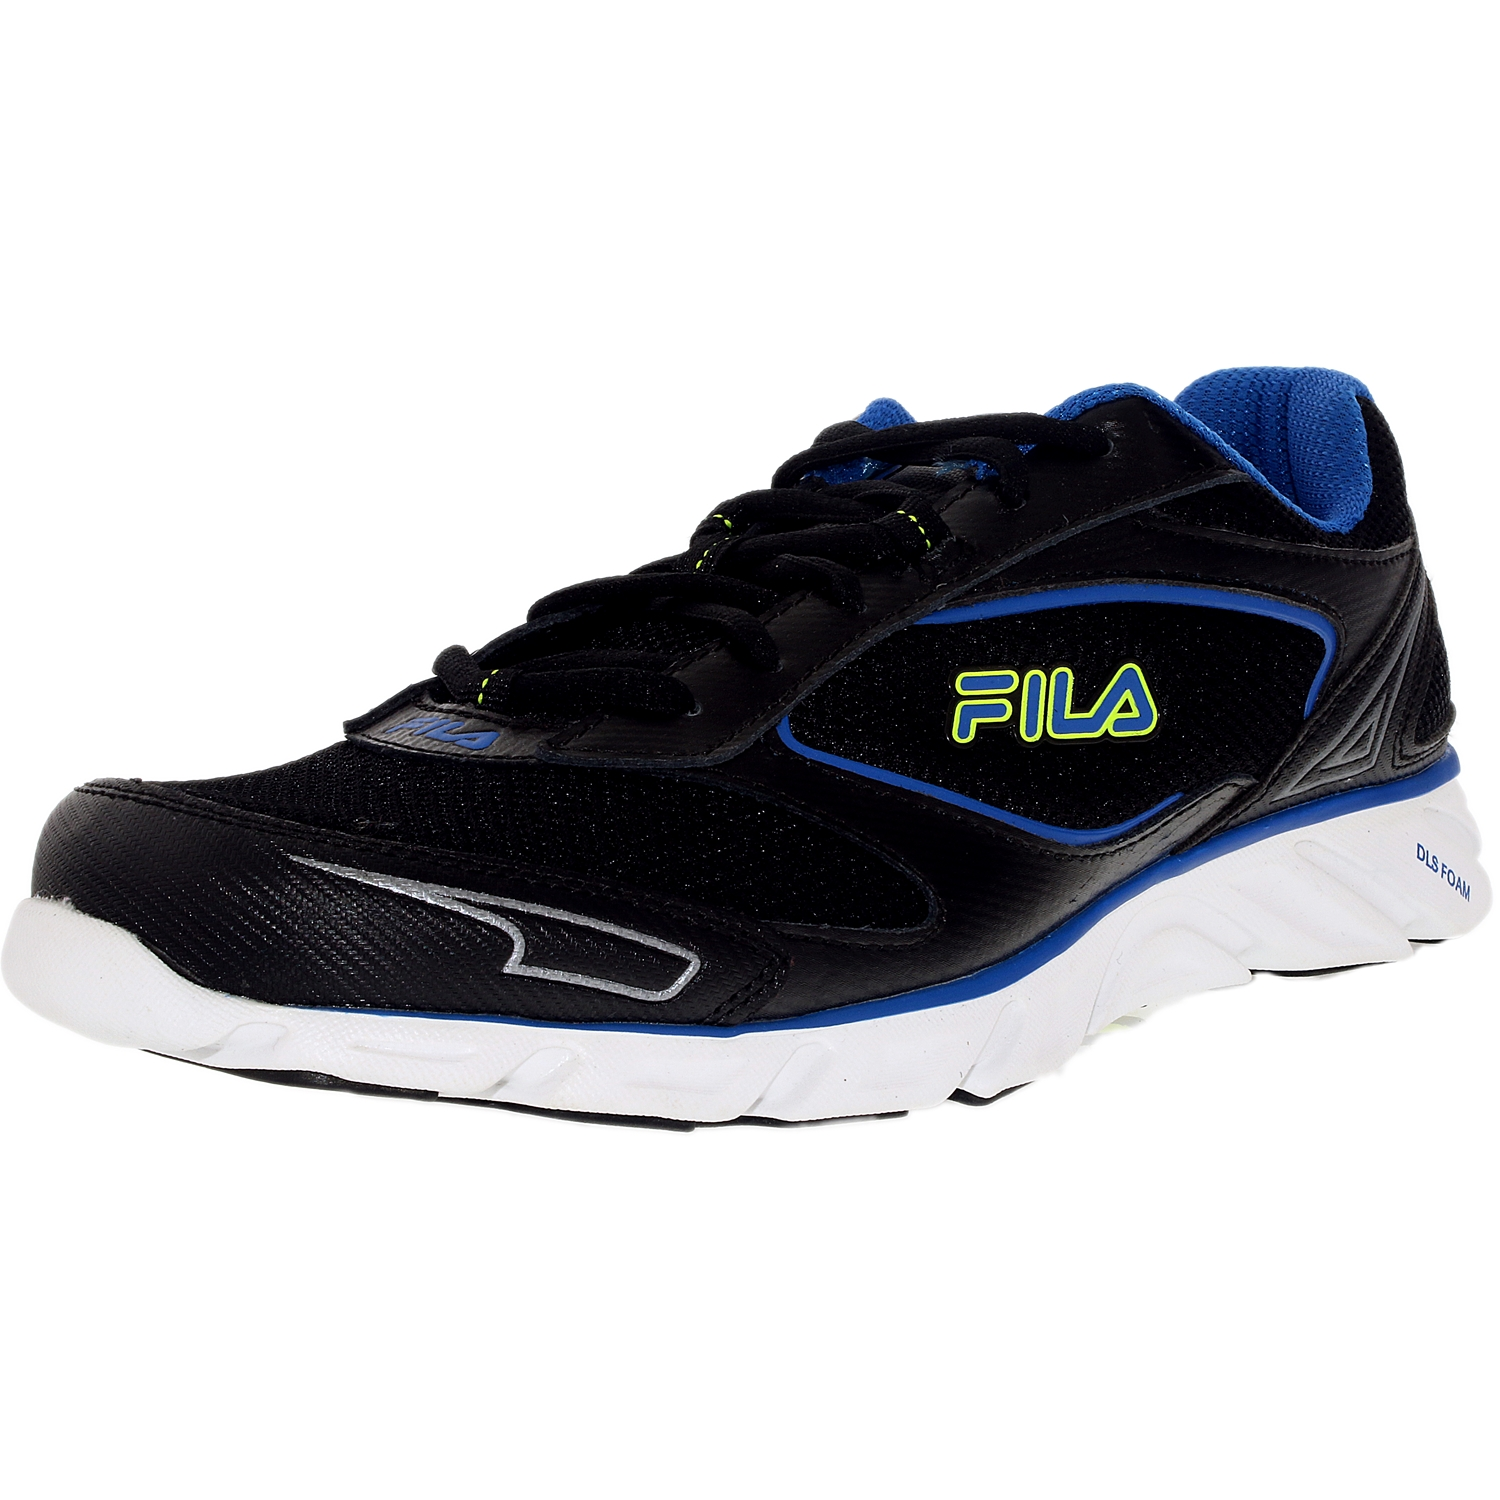 Fila Men's Ancerus 5 Ankle-High Running Shoe by Fila